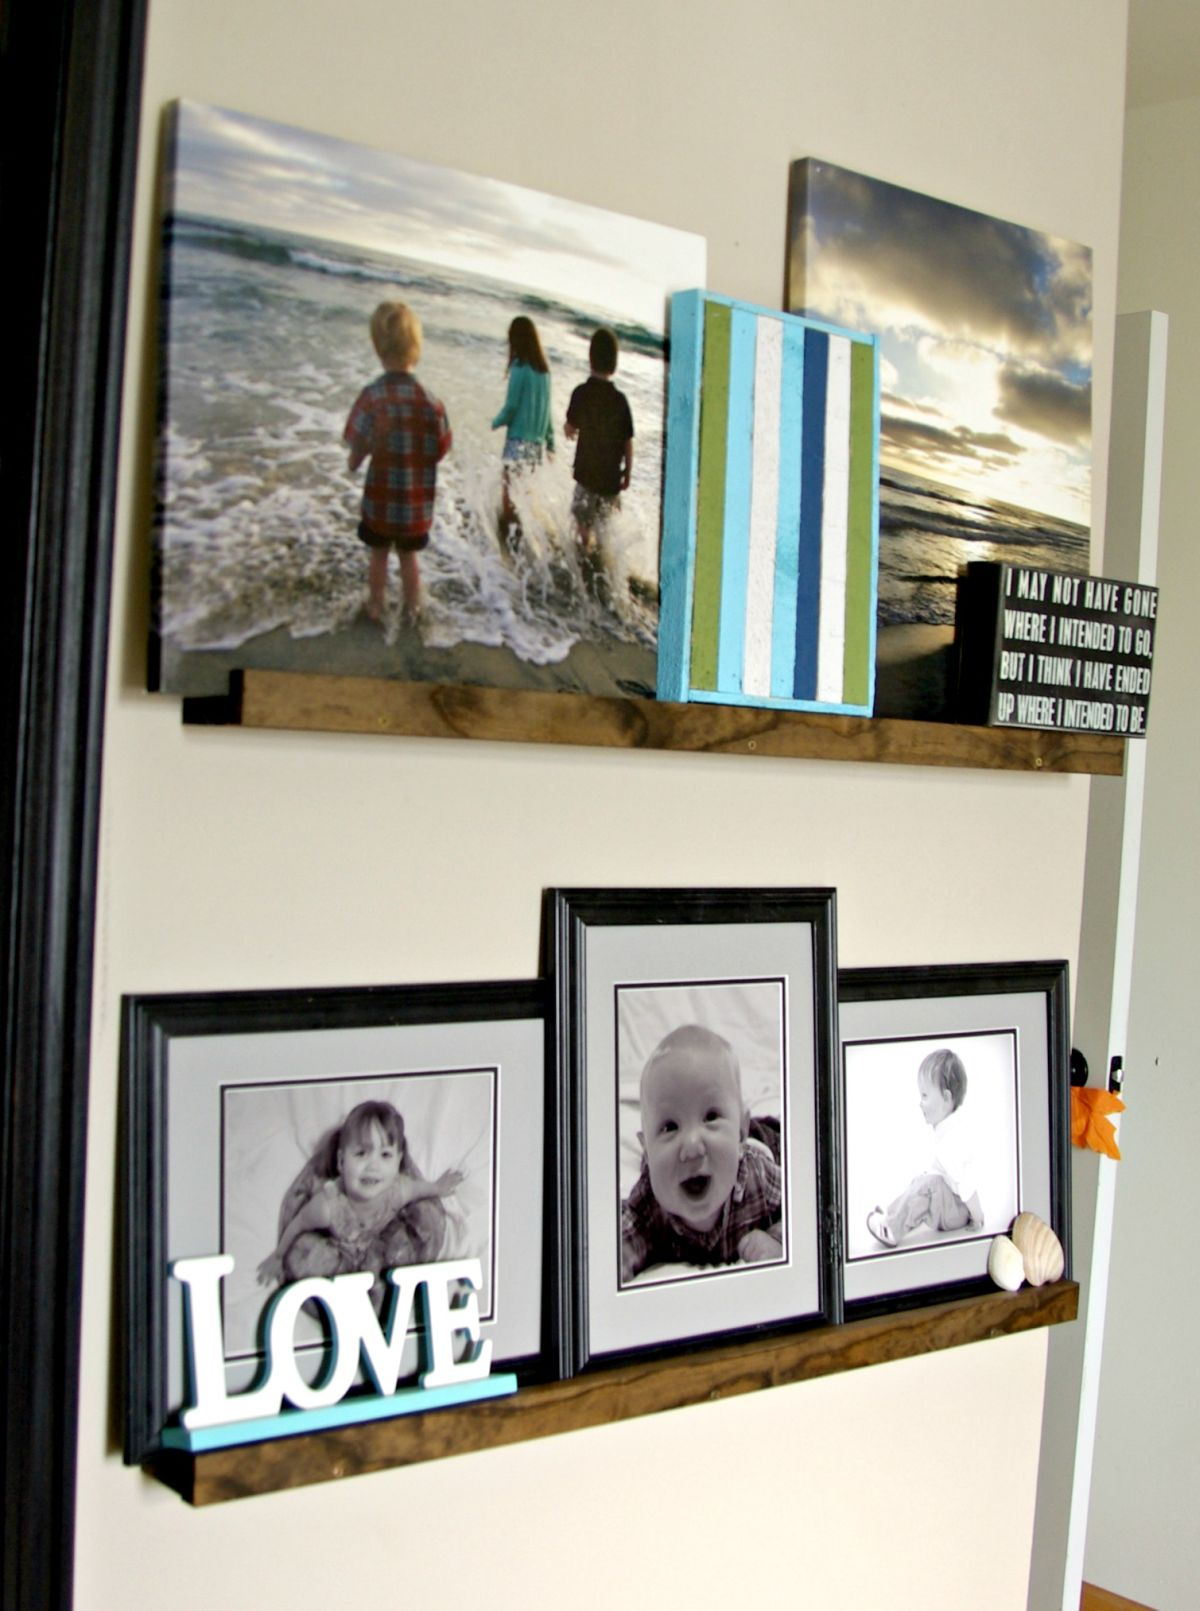 Awe Inspiring Diy Picture Ledge The Updates Gallery Wall Home Interior And Landscaping Dextoversignezvosmurscom